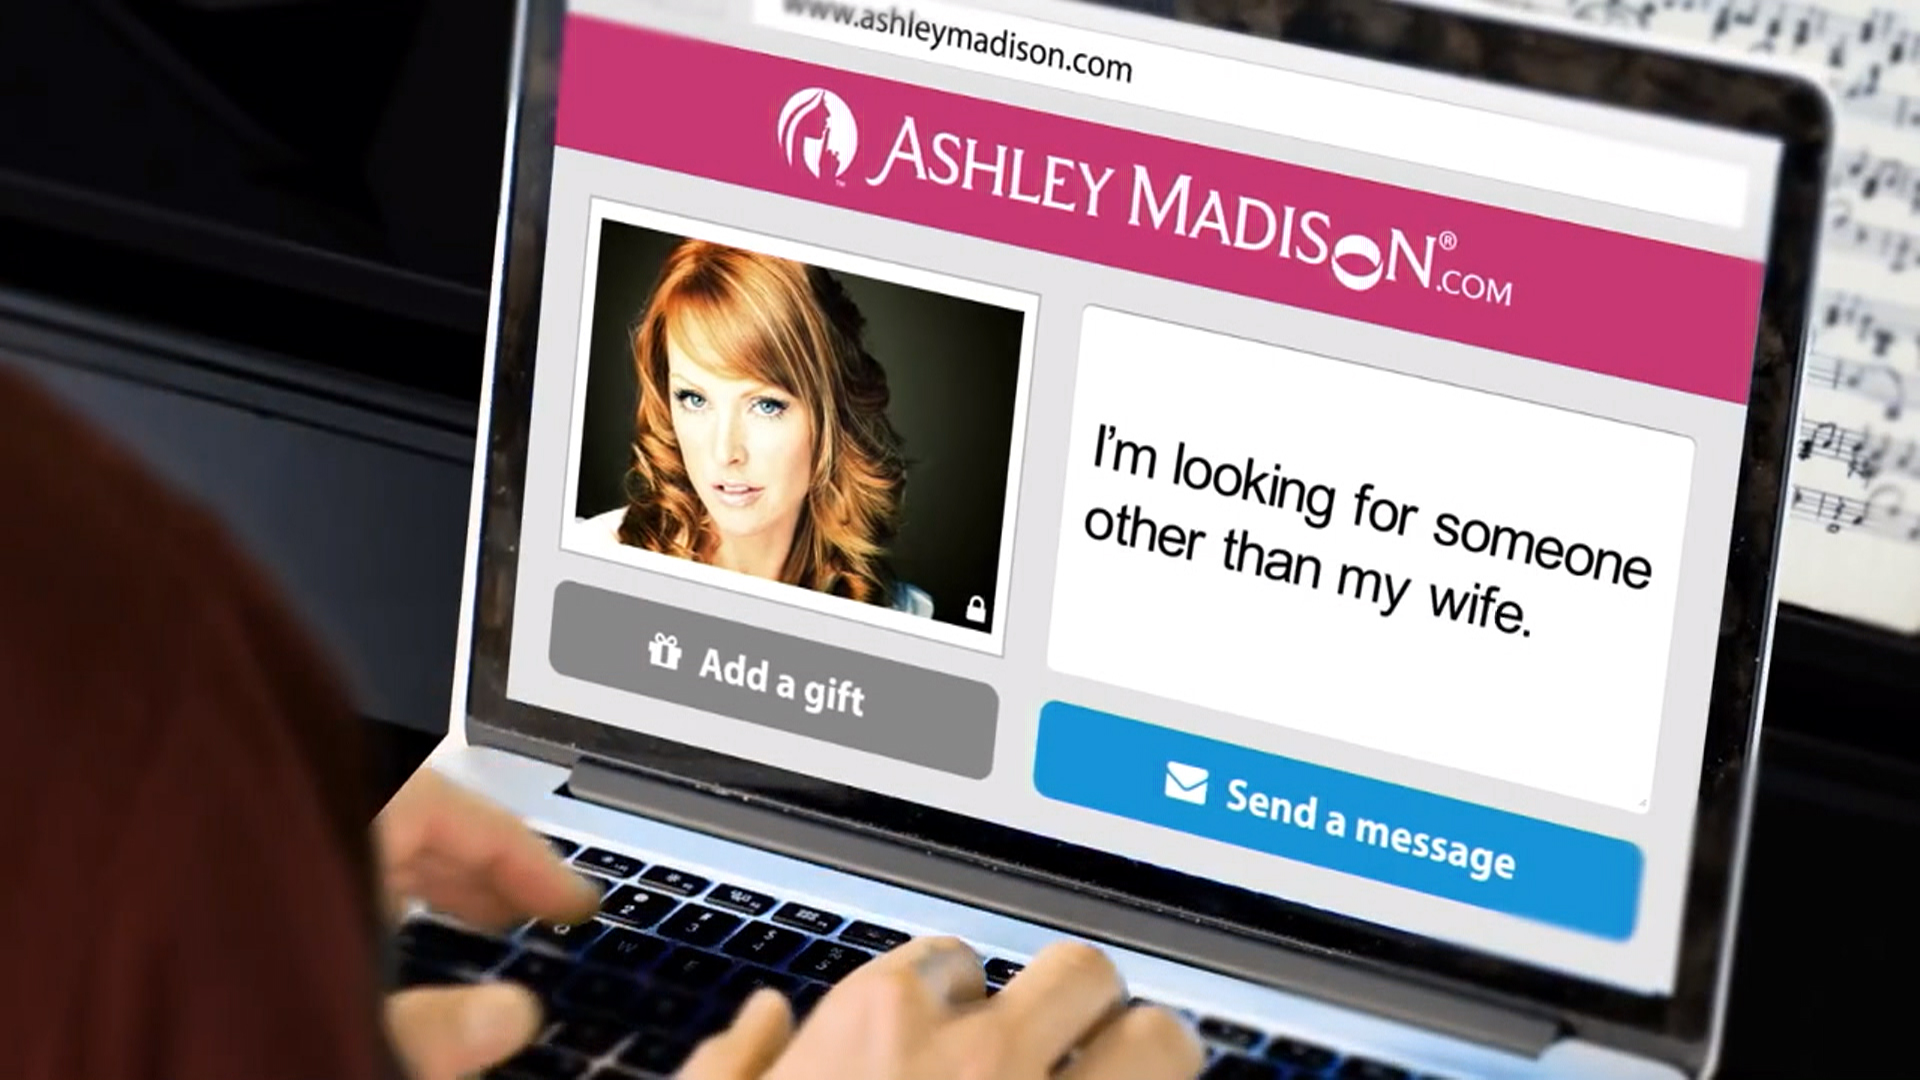 news hackers threaten leak details ashley madison clients